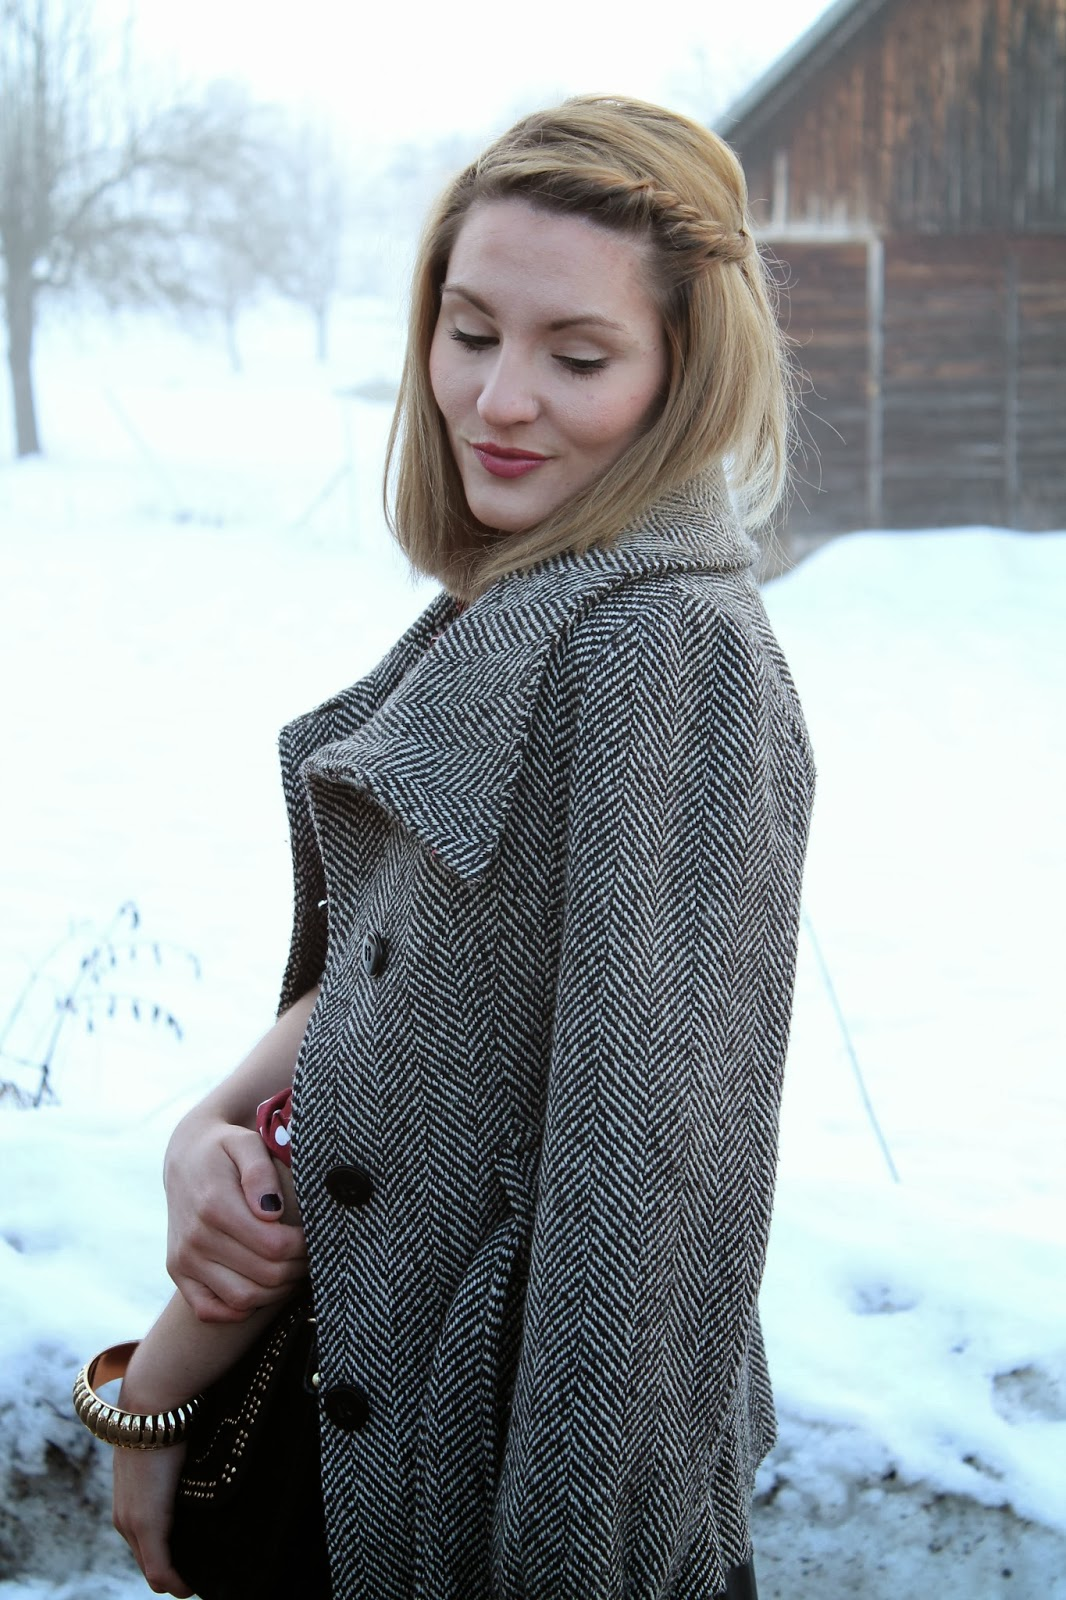 Fashionblogger Austria Österreich Kärnten Carinthia KLagenfurt Zalando Bag Crossover Tasche Hahnentritt Mantel Houndstooth Persunmall Hearts Shirt blouse Lederrock Leather Skirt Fashionbloger Styleblooger Winterstyle Winterlook Winteroutfit